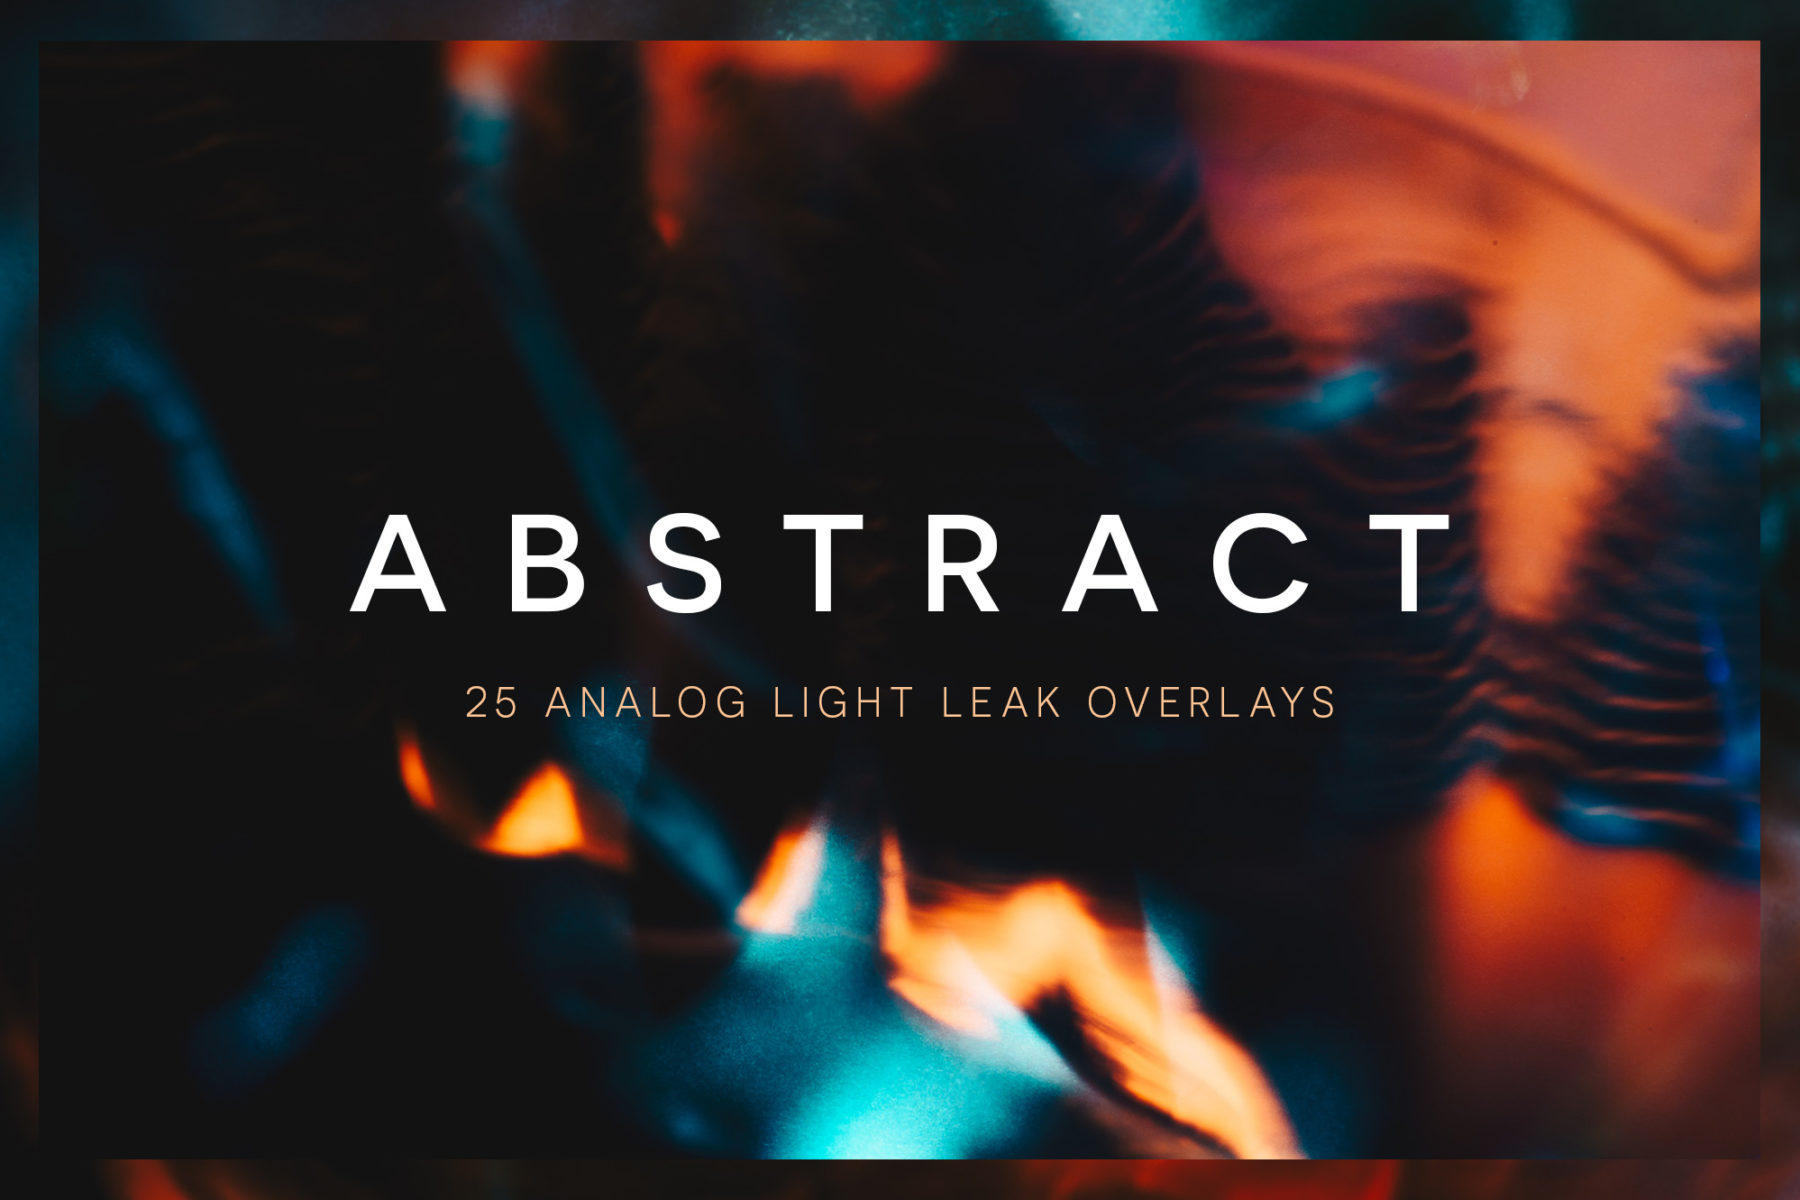 https://nusupply.co/wp-content/uploads/2020/05/ABSTRACT-PREVIEW-cover-1800x1200.jpg